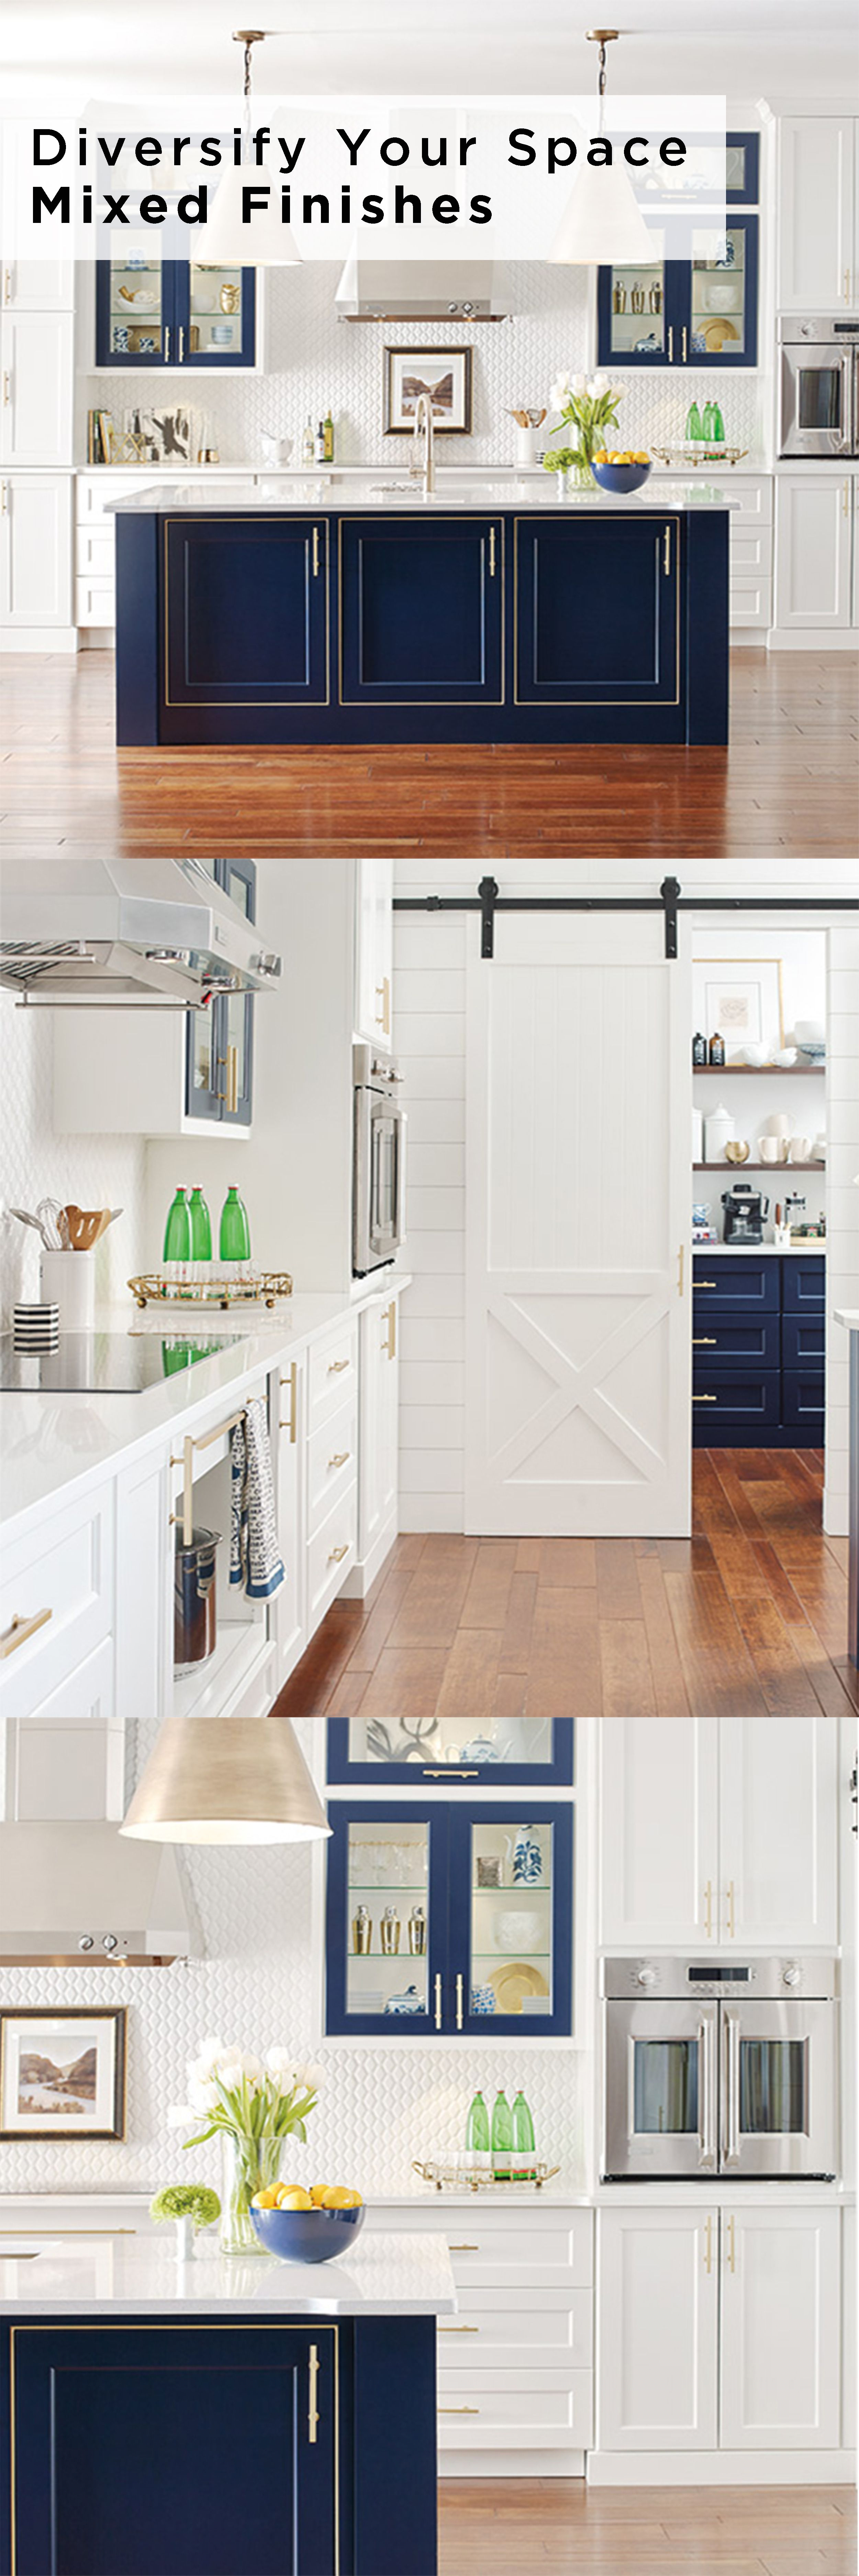 A Mix Of Finishes Showcase The Design Of This Kitchen Renner Door Style Omega Cabinets In A Pure White A Kitchen Design Kitchen Cabinet Styles White Kitchen